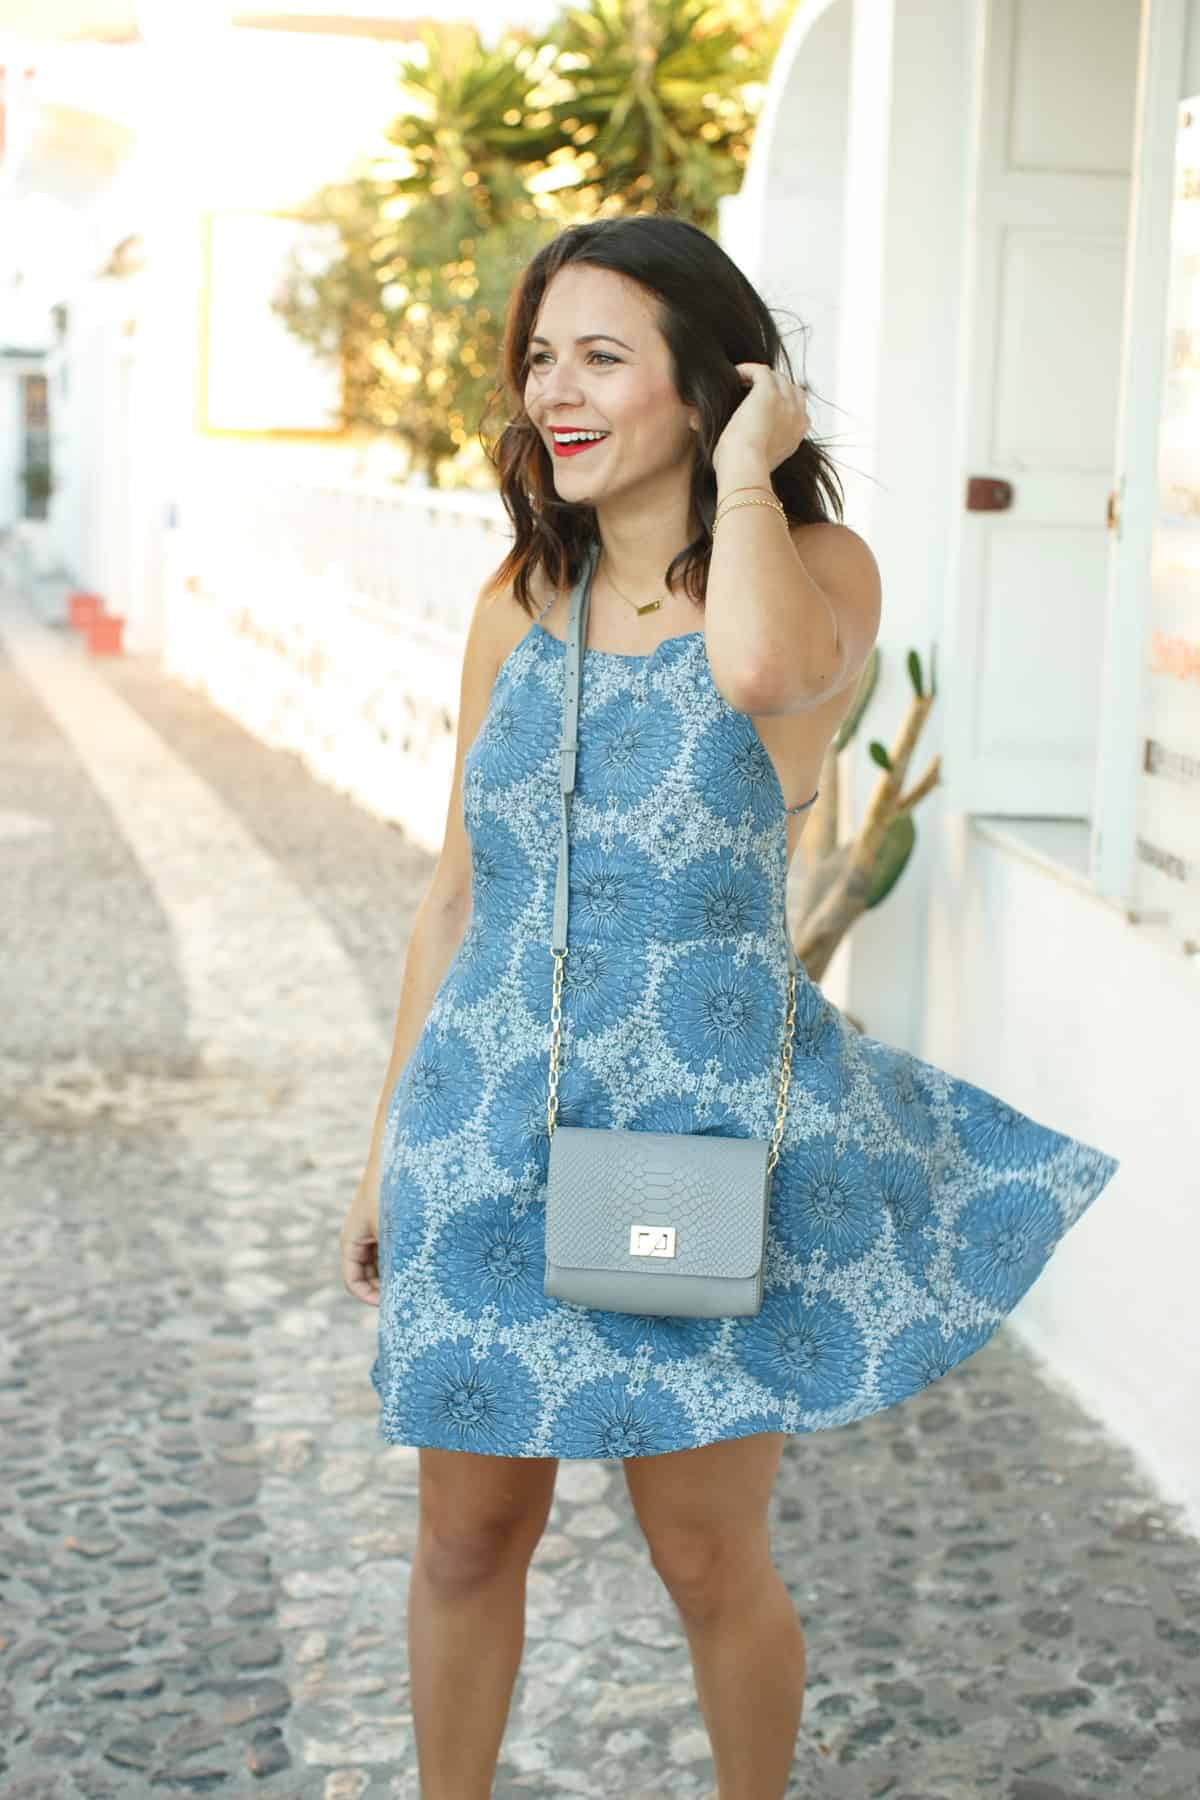 Revolve blue dress, Santorini Greece, Fira, what to wear to Greece - My Style Vita @mystylevita